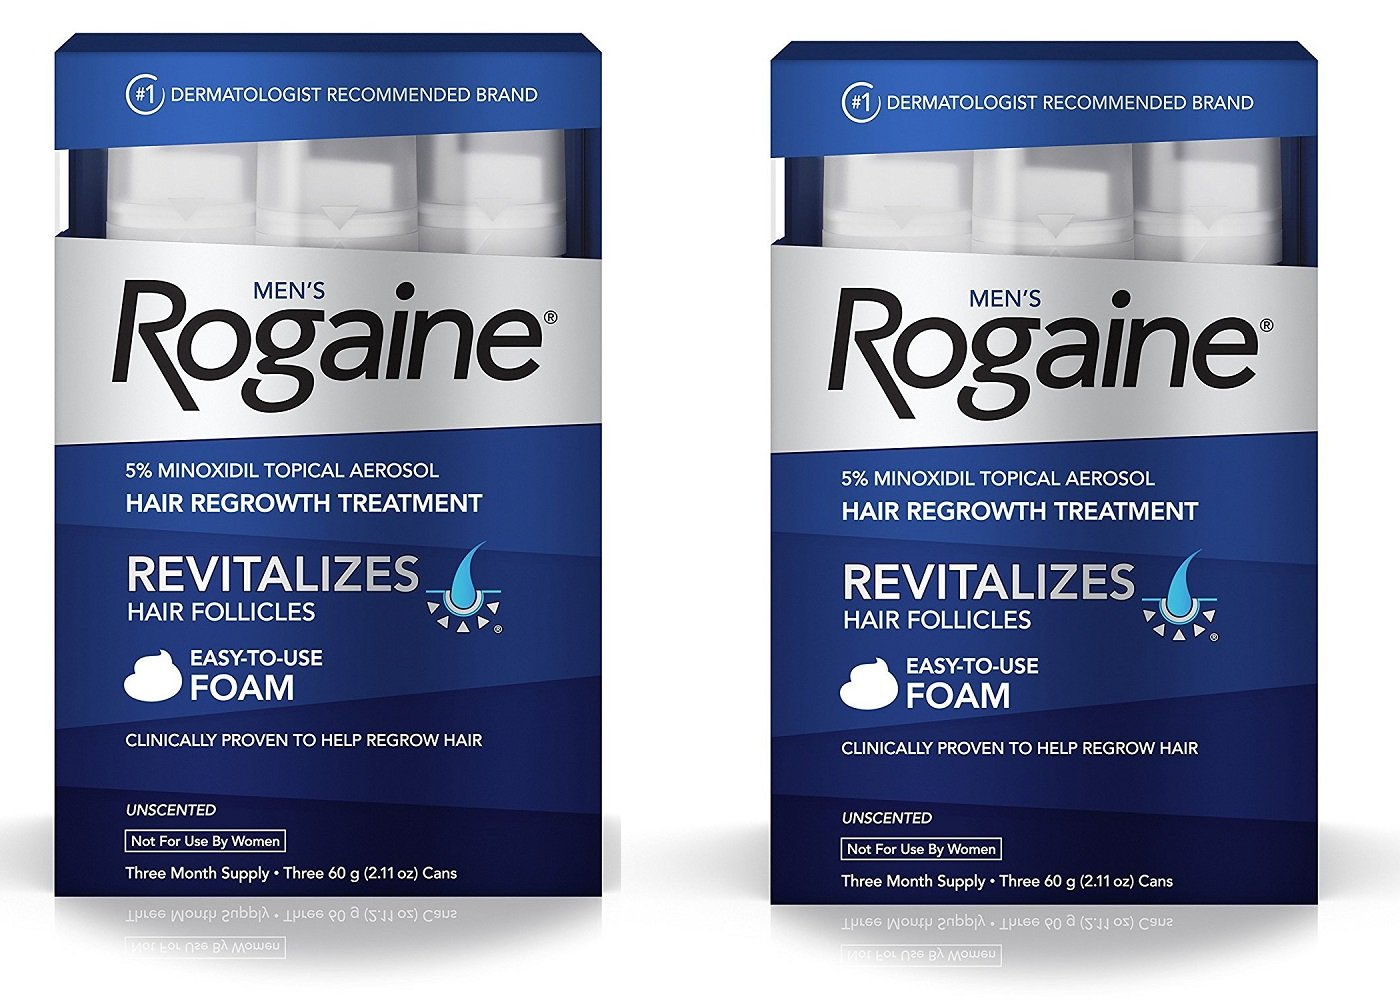 Men's Rogaine Hair Loss & Hair Thinning Treatment Minoxidil Foam, Six Month Supply